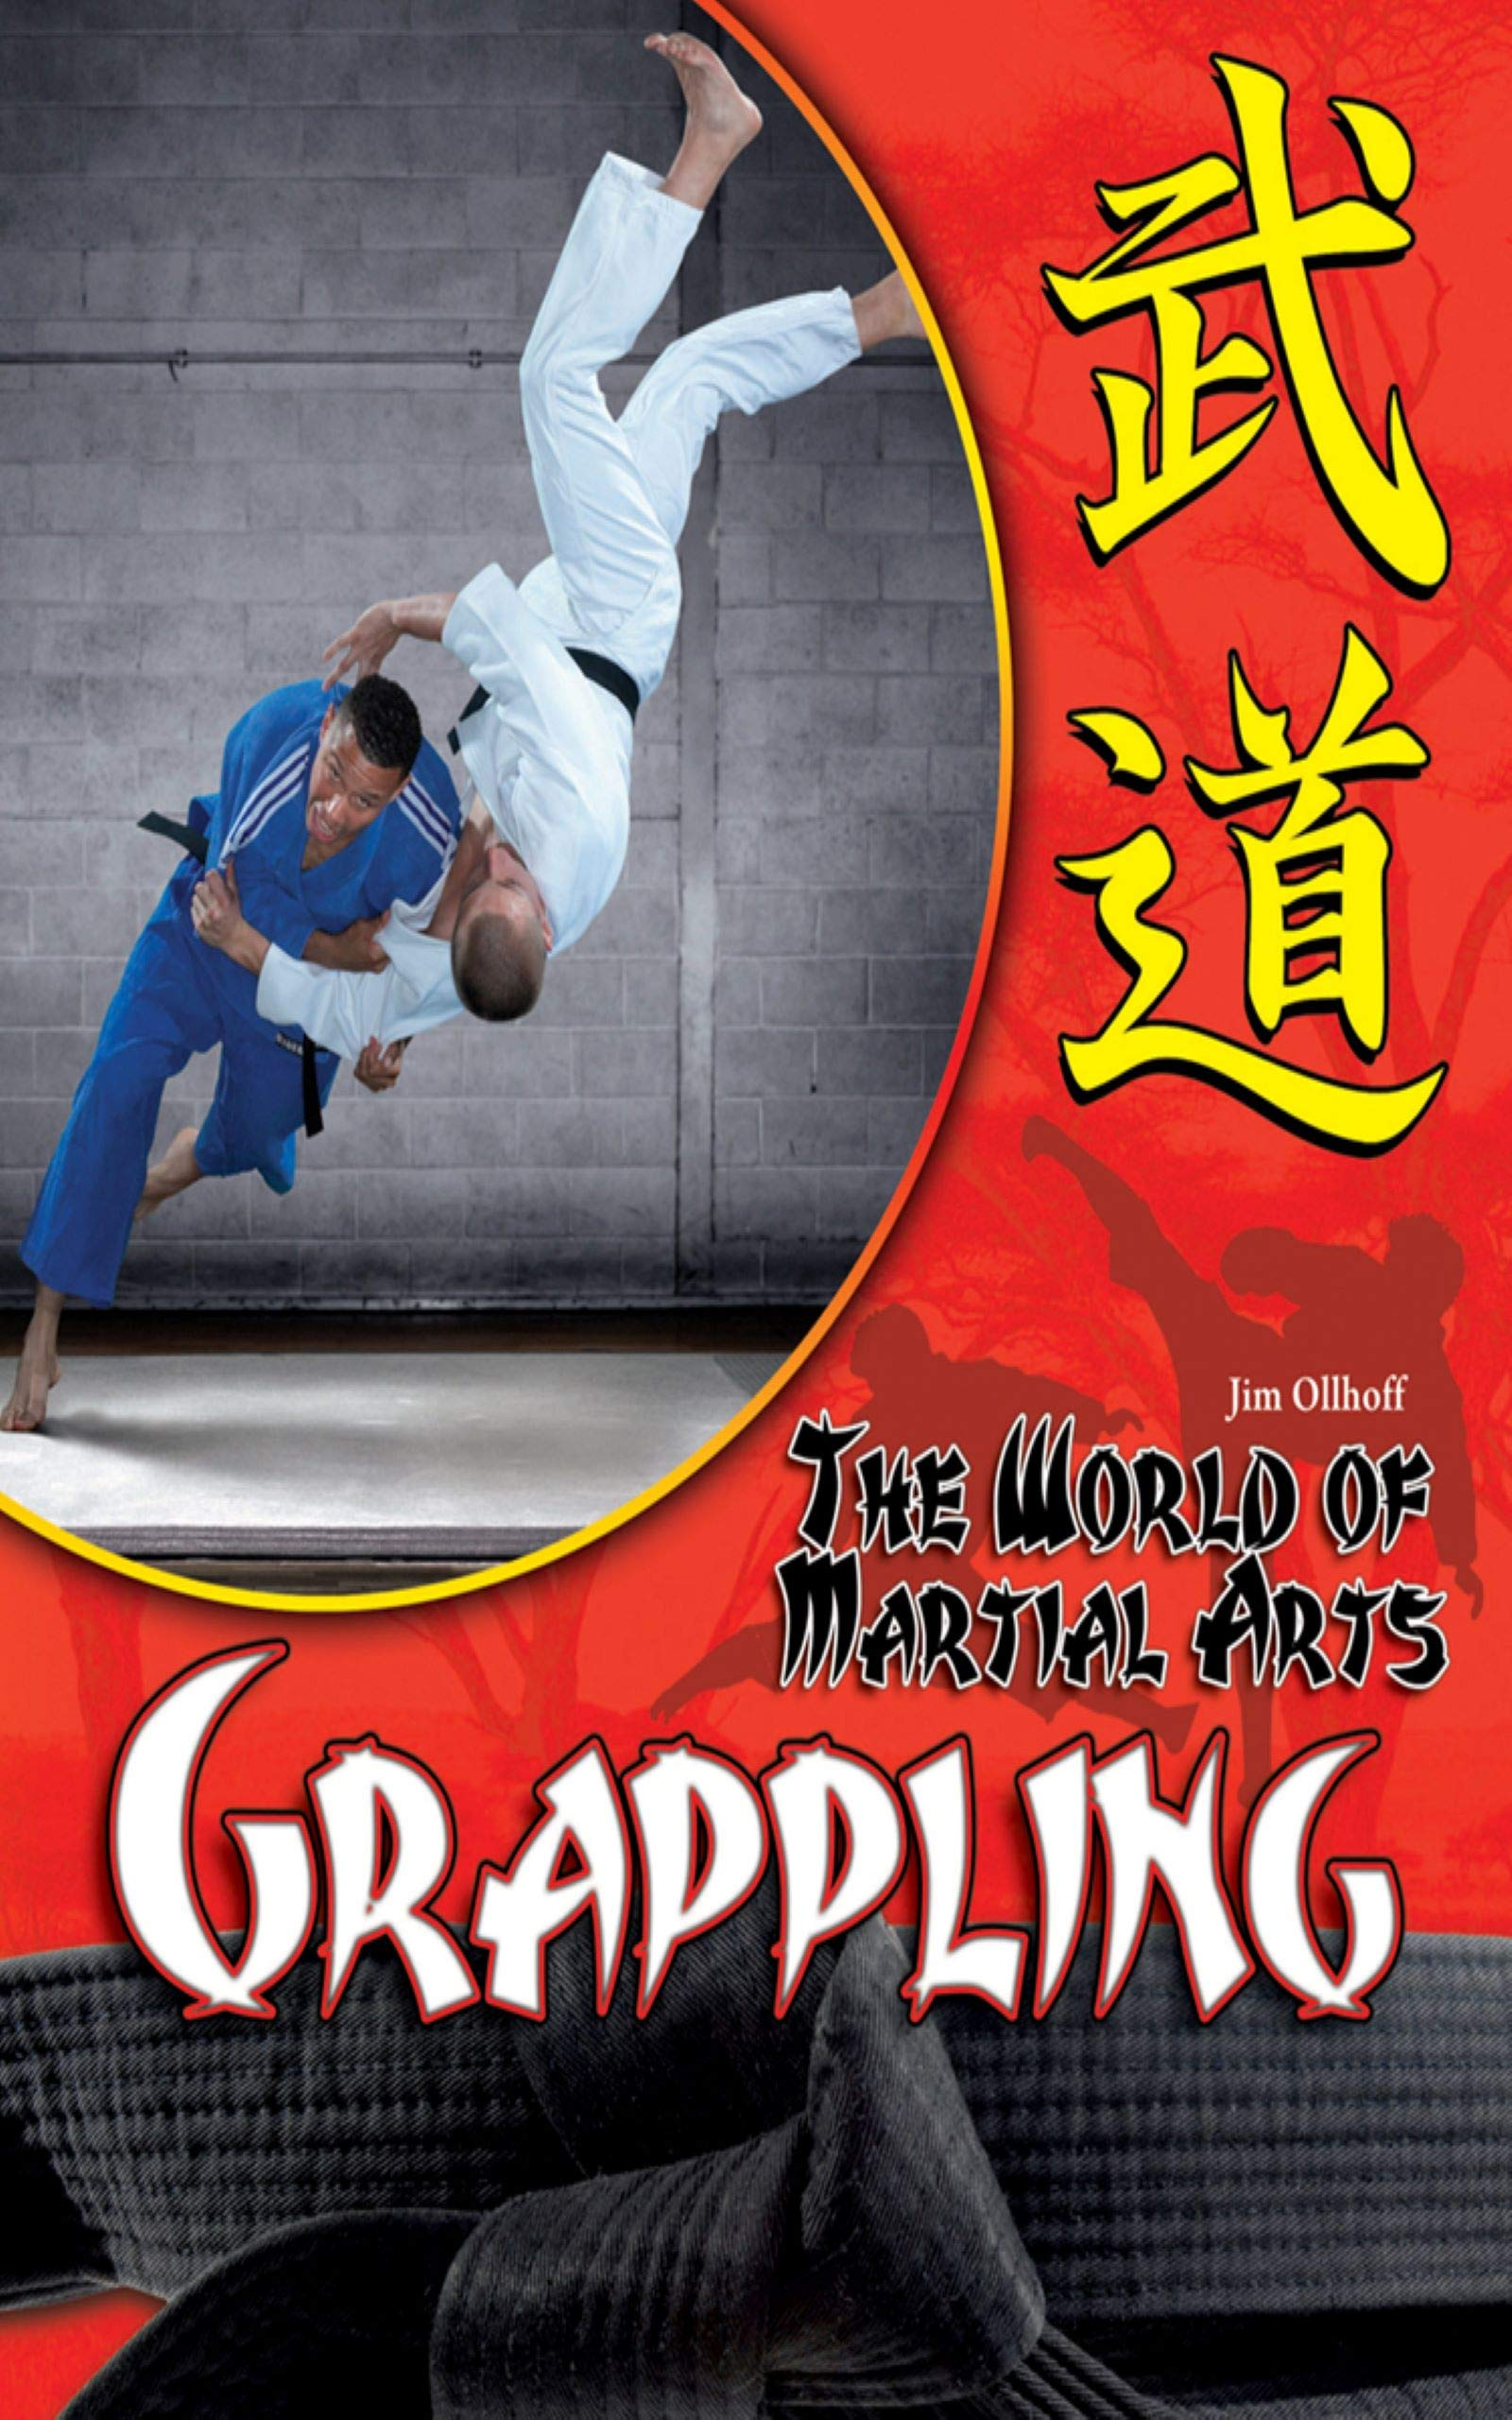 Grappling (The World of Martial Arts) (English Edition)